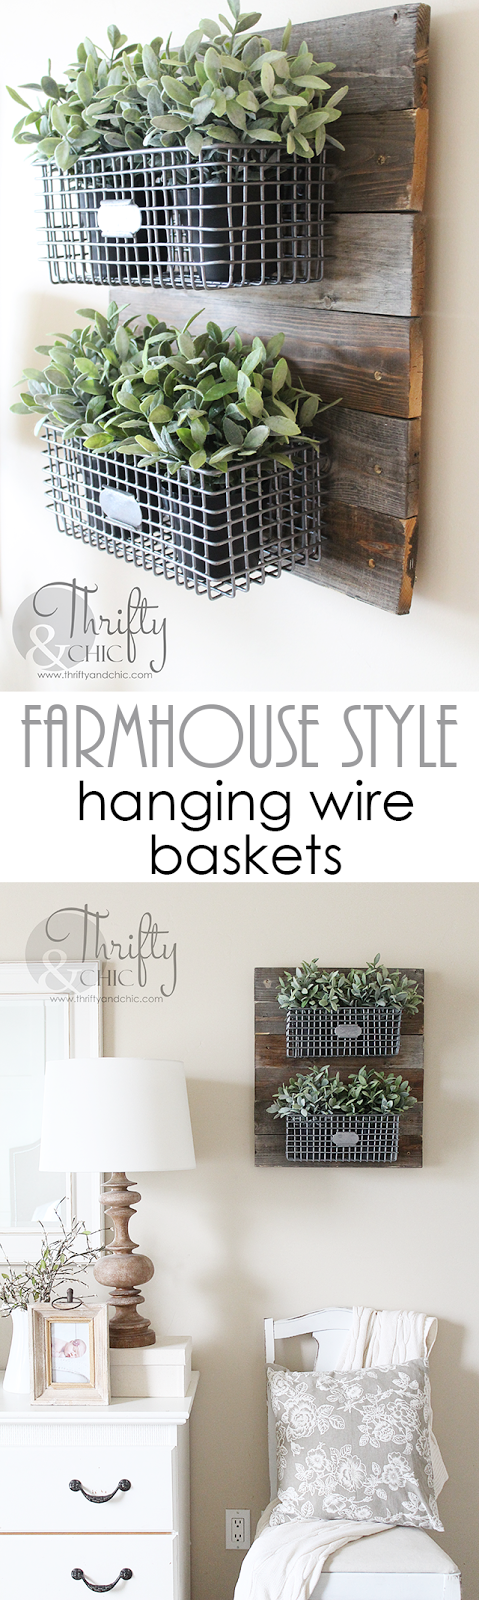 DIY farmhouse style hanging baskets. Perfect for storage, mail sorting, or hanging herb garden